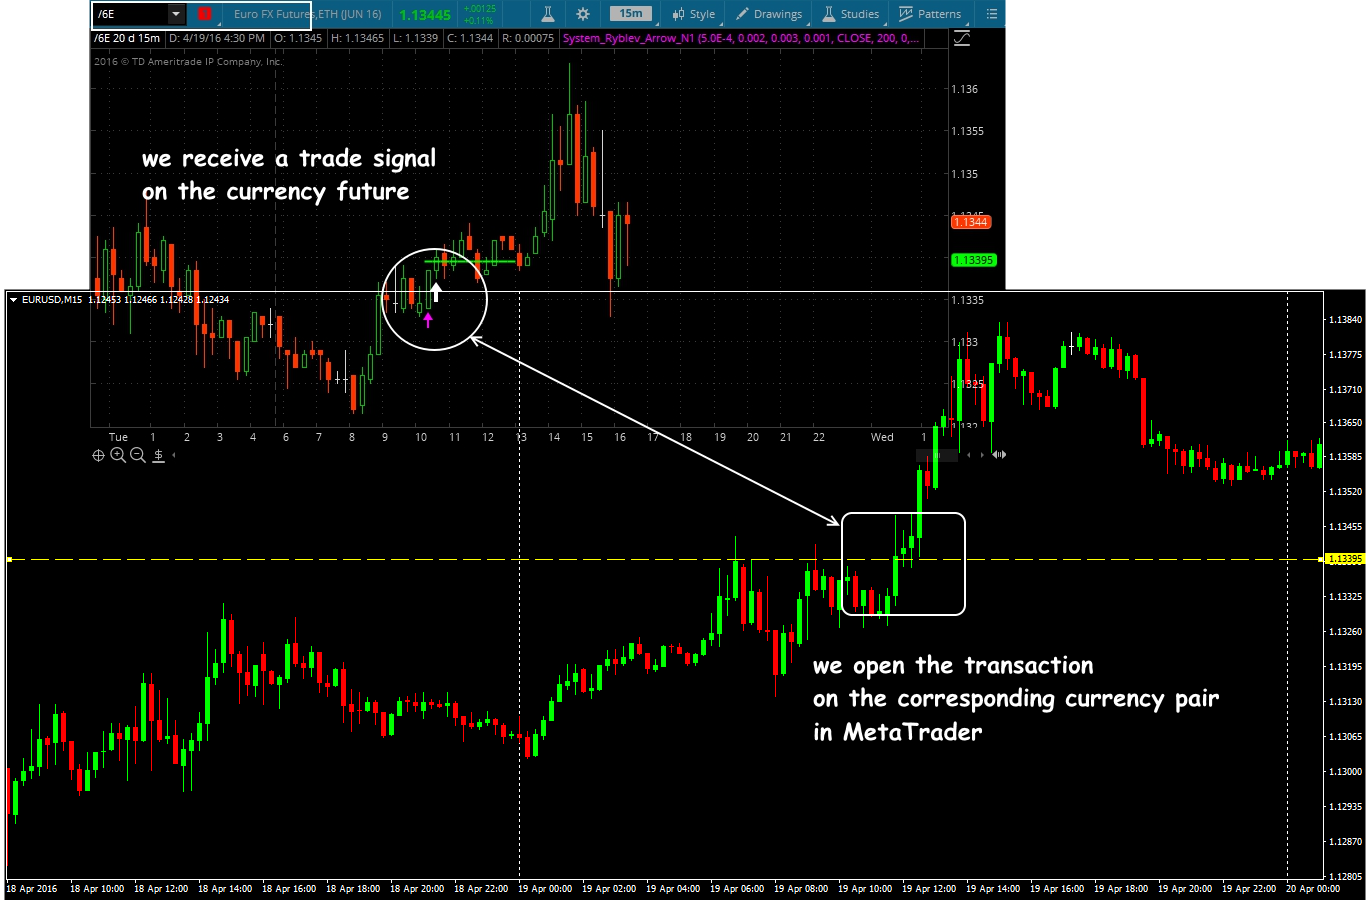 Technical analysis of futures: we use effectively an exchange asset